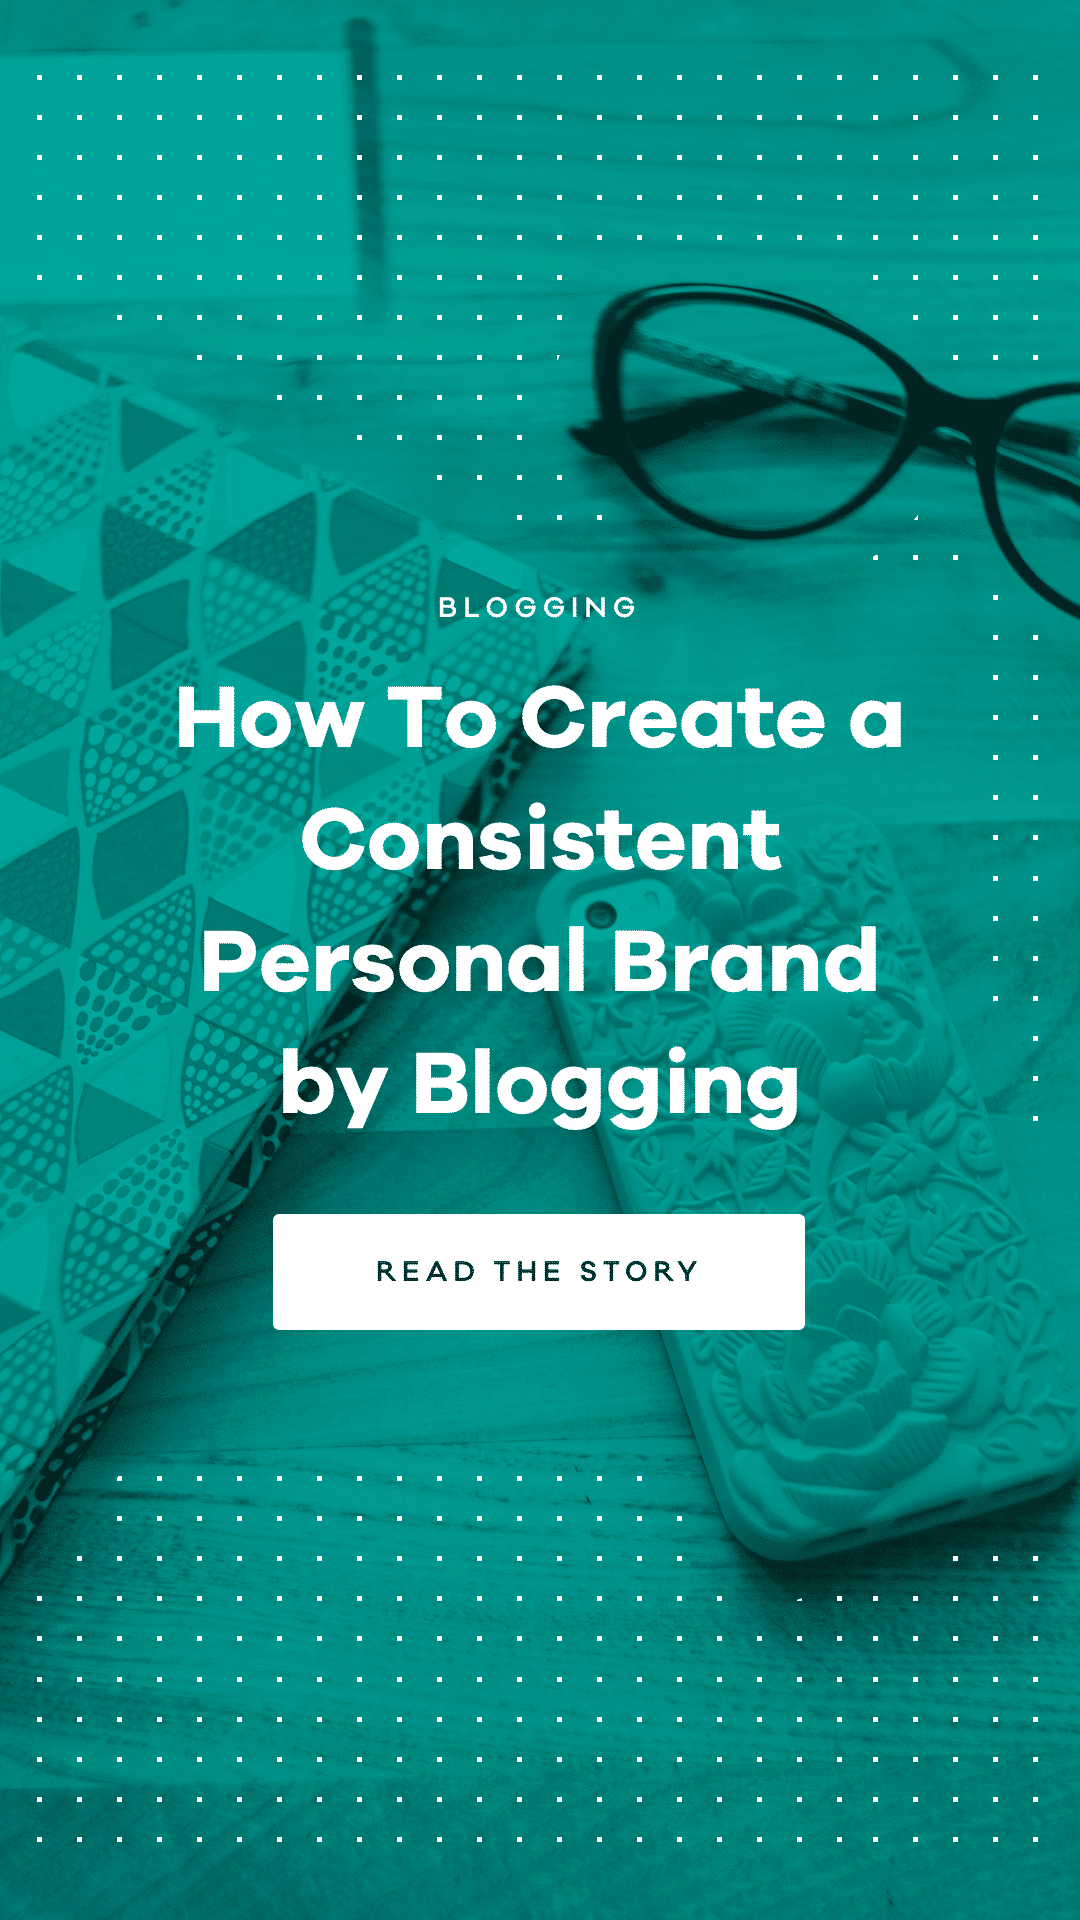 Learn how to create a consistent personal brand by blogging from professional players out there. Be committed to the journey and take it one step at a time.